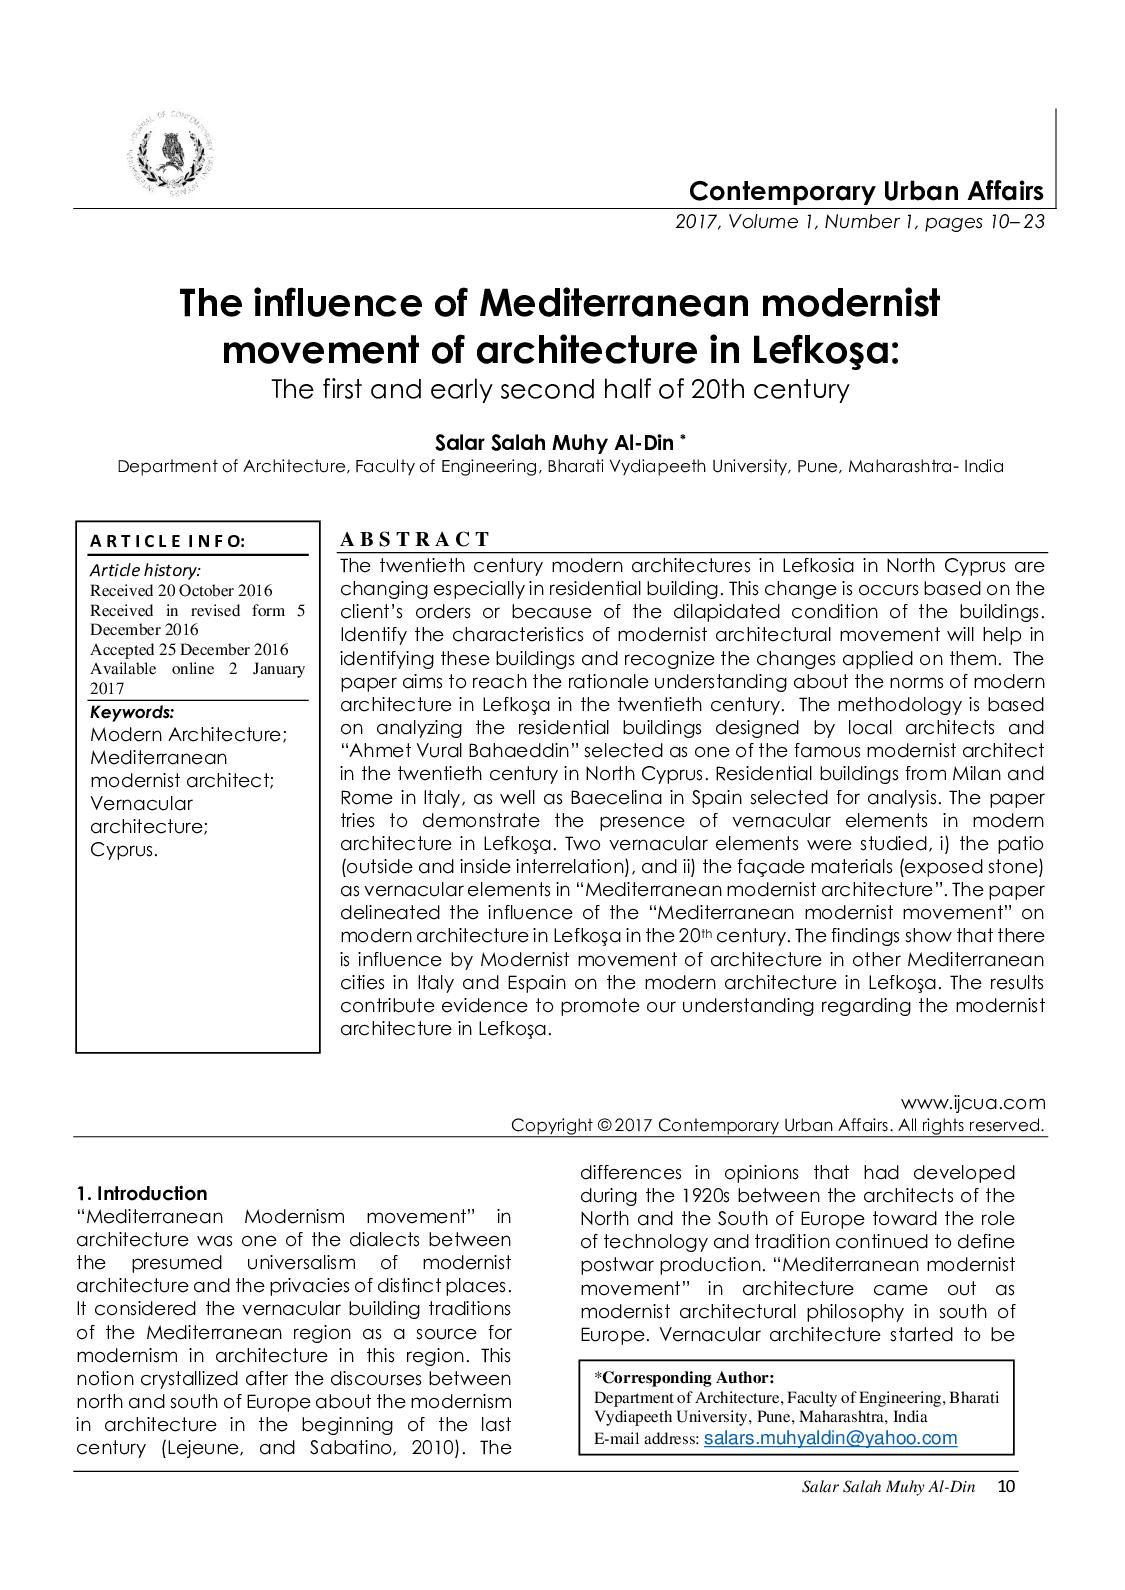 Calaméo - The influence of Mediterranean modernist movement